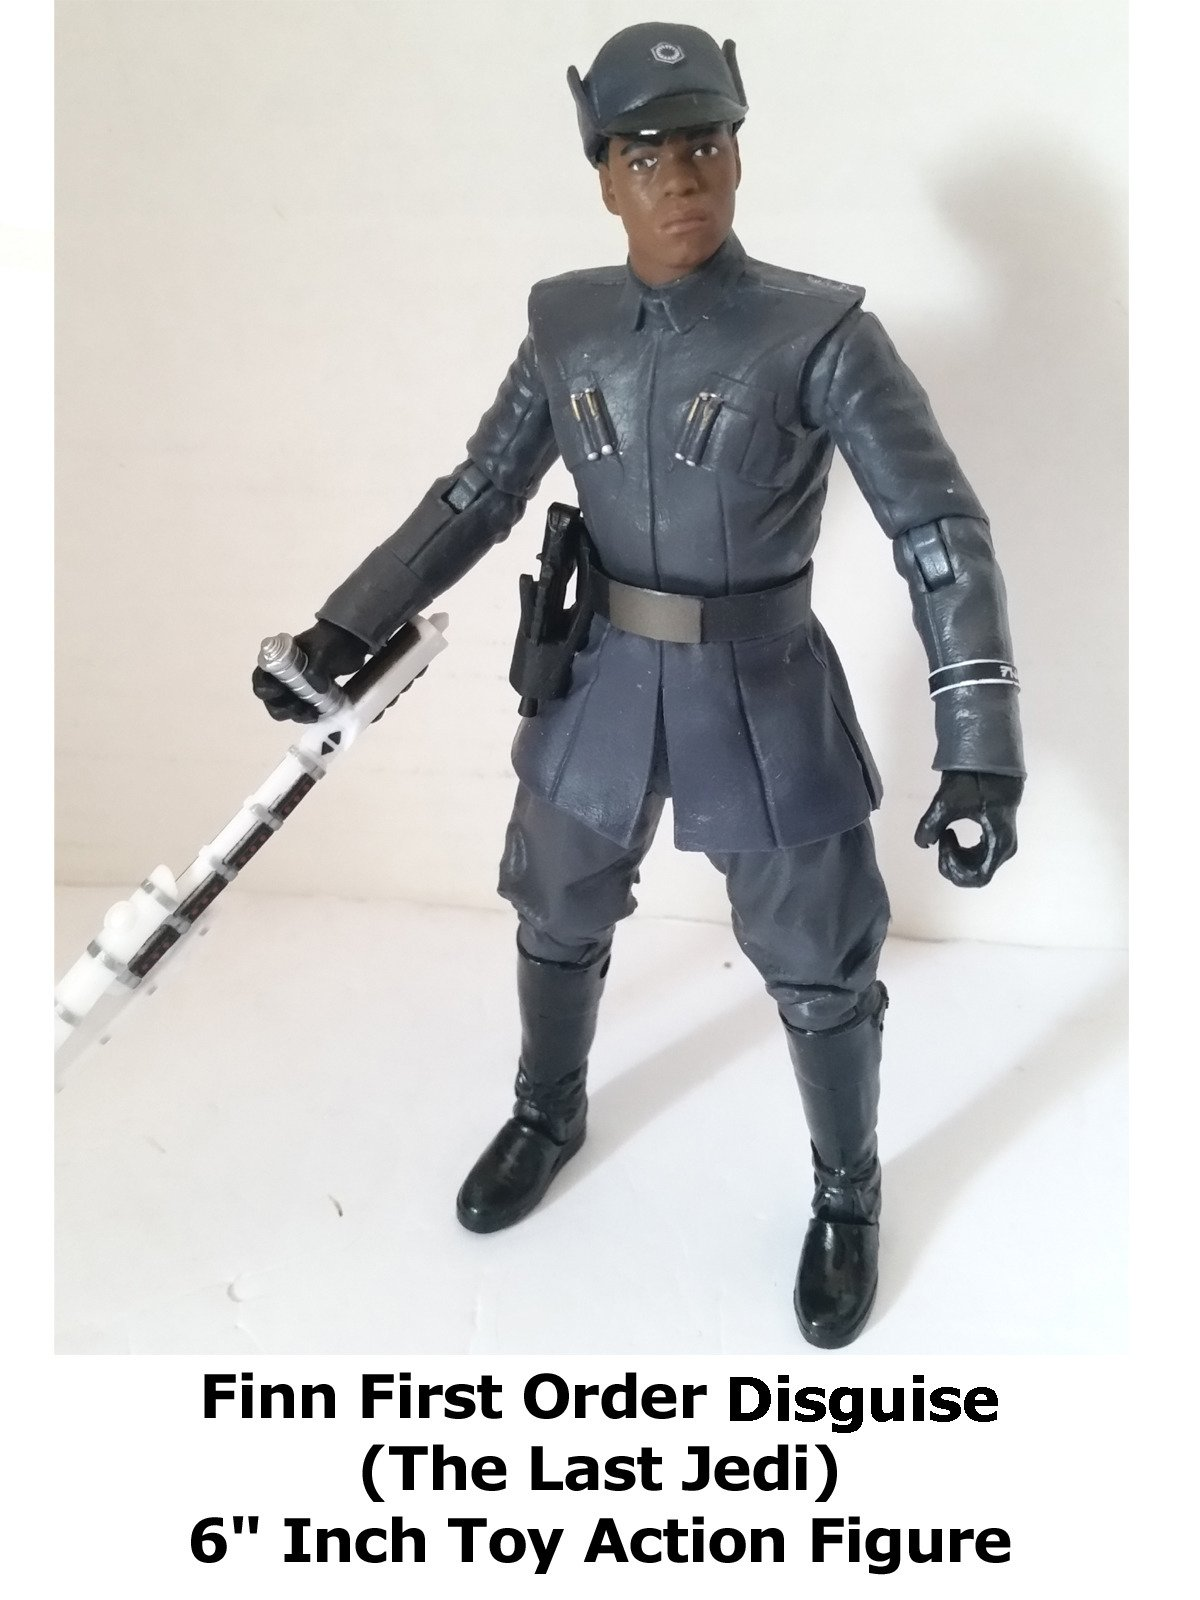 "Review: Star Wars Black Series Finn First Order Disguise (The Last Jedi) 6"" Inch Toy Action Figure"